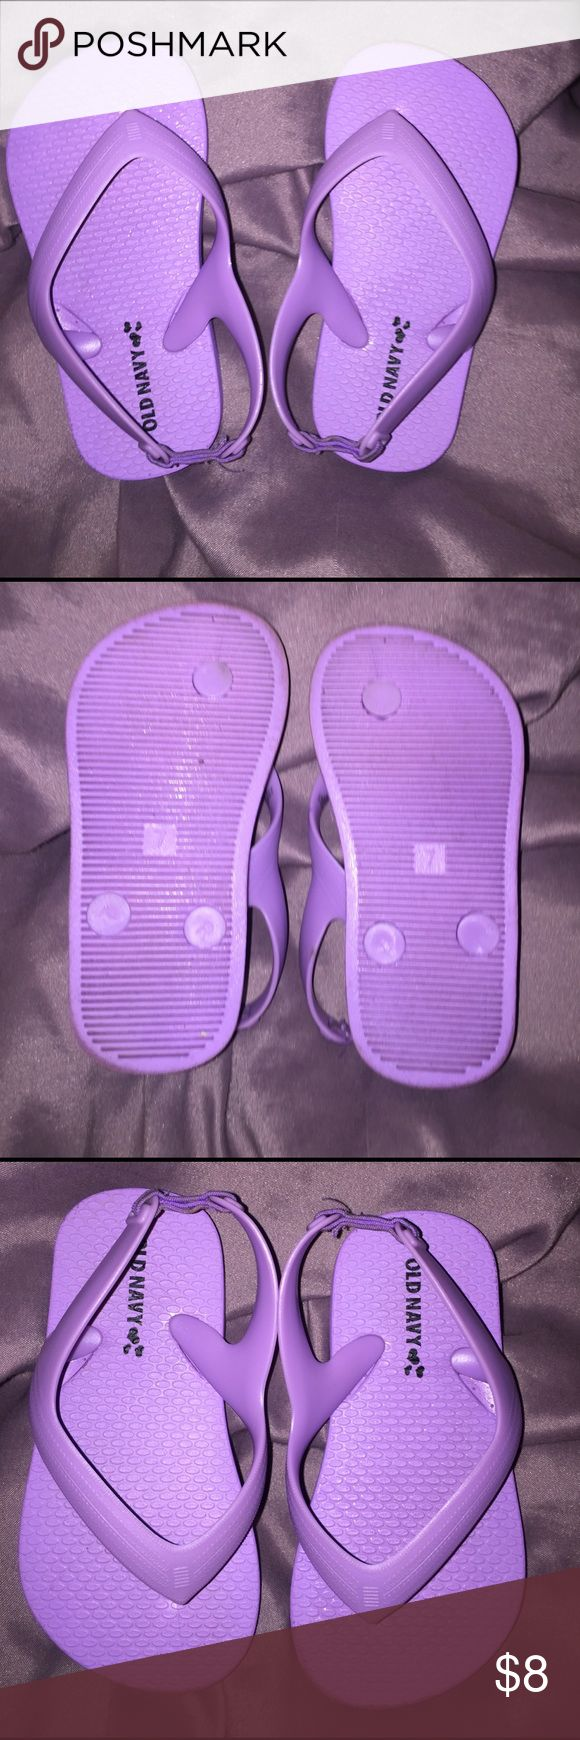 Toddler 7 old navy flip flops,size purple,like new Great condition, like new, purple old navy flip flops, size toddler 7 has elastic strap at heel to help hold on place and for adjustment, 🚬🐱🏡 Old Navy Shoes Sandals & Flip Flops